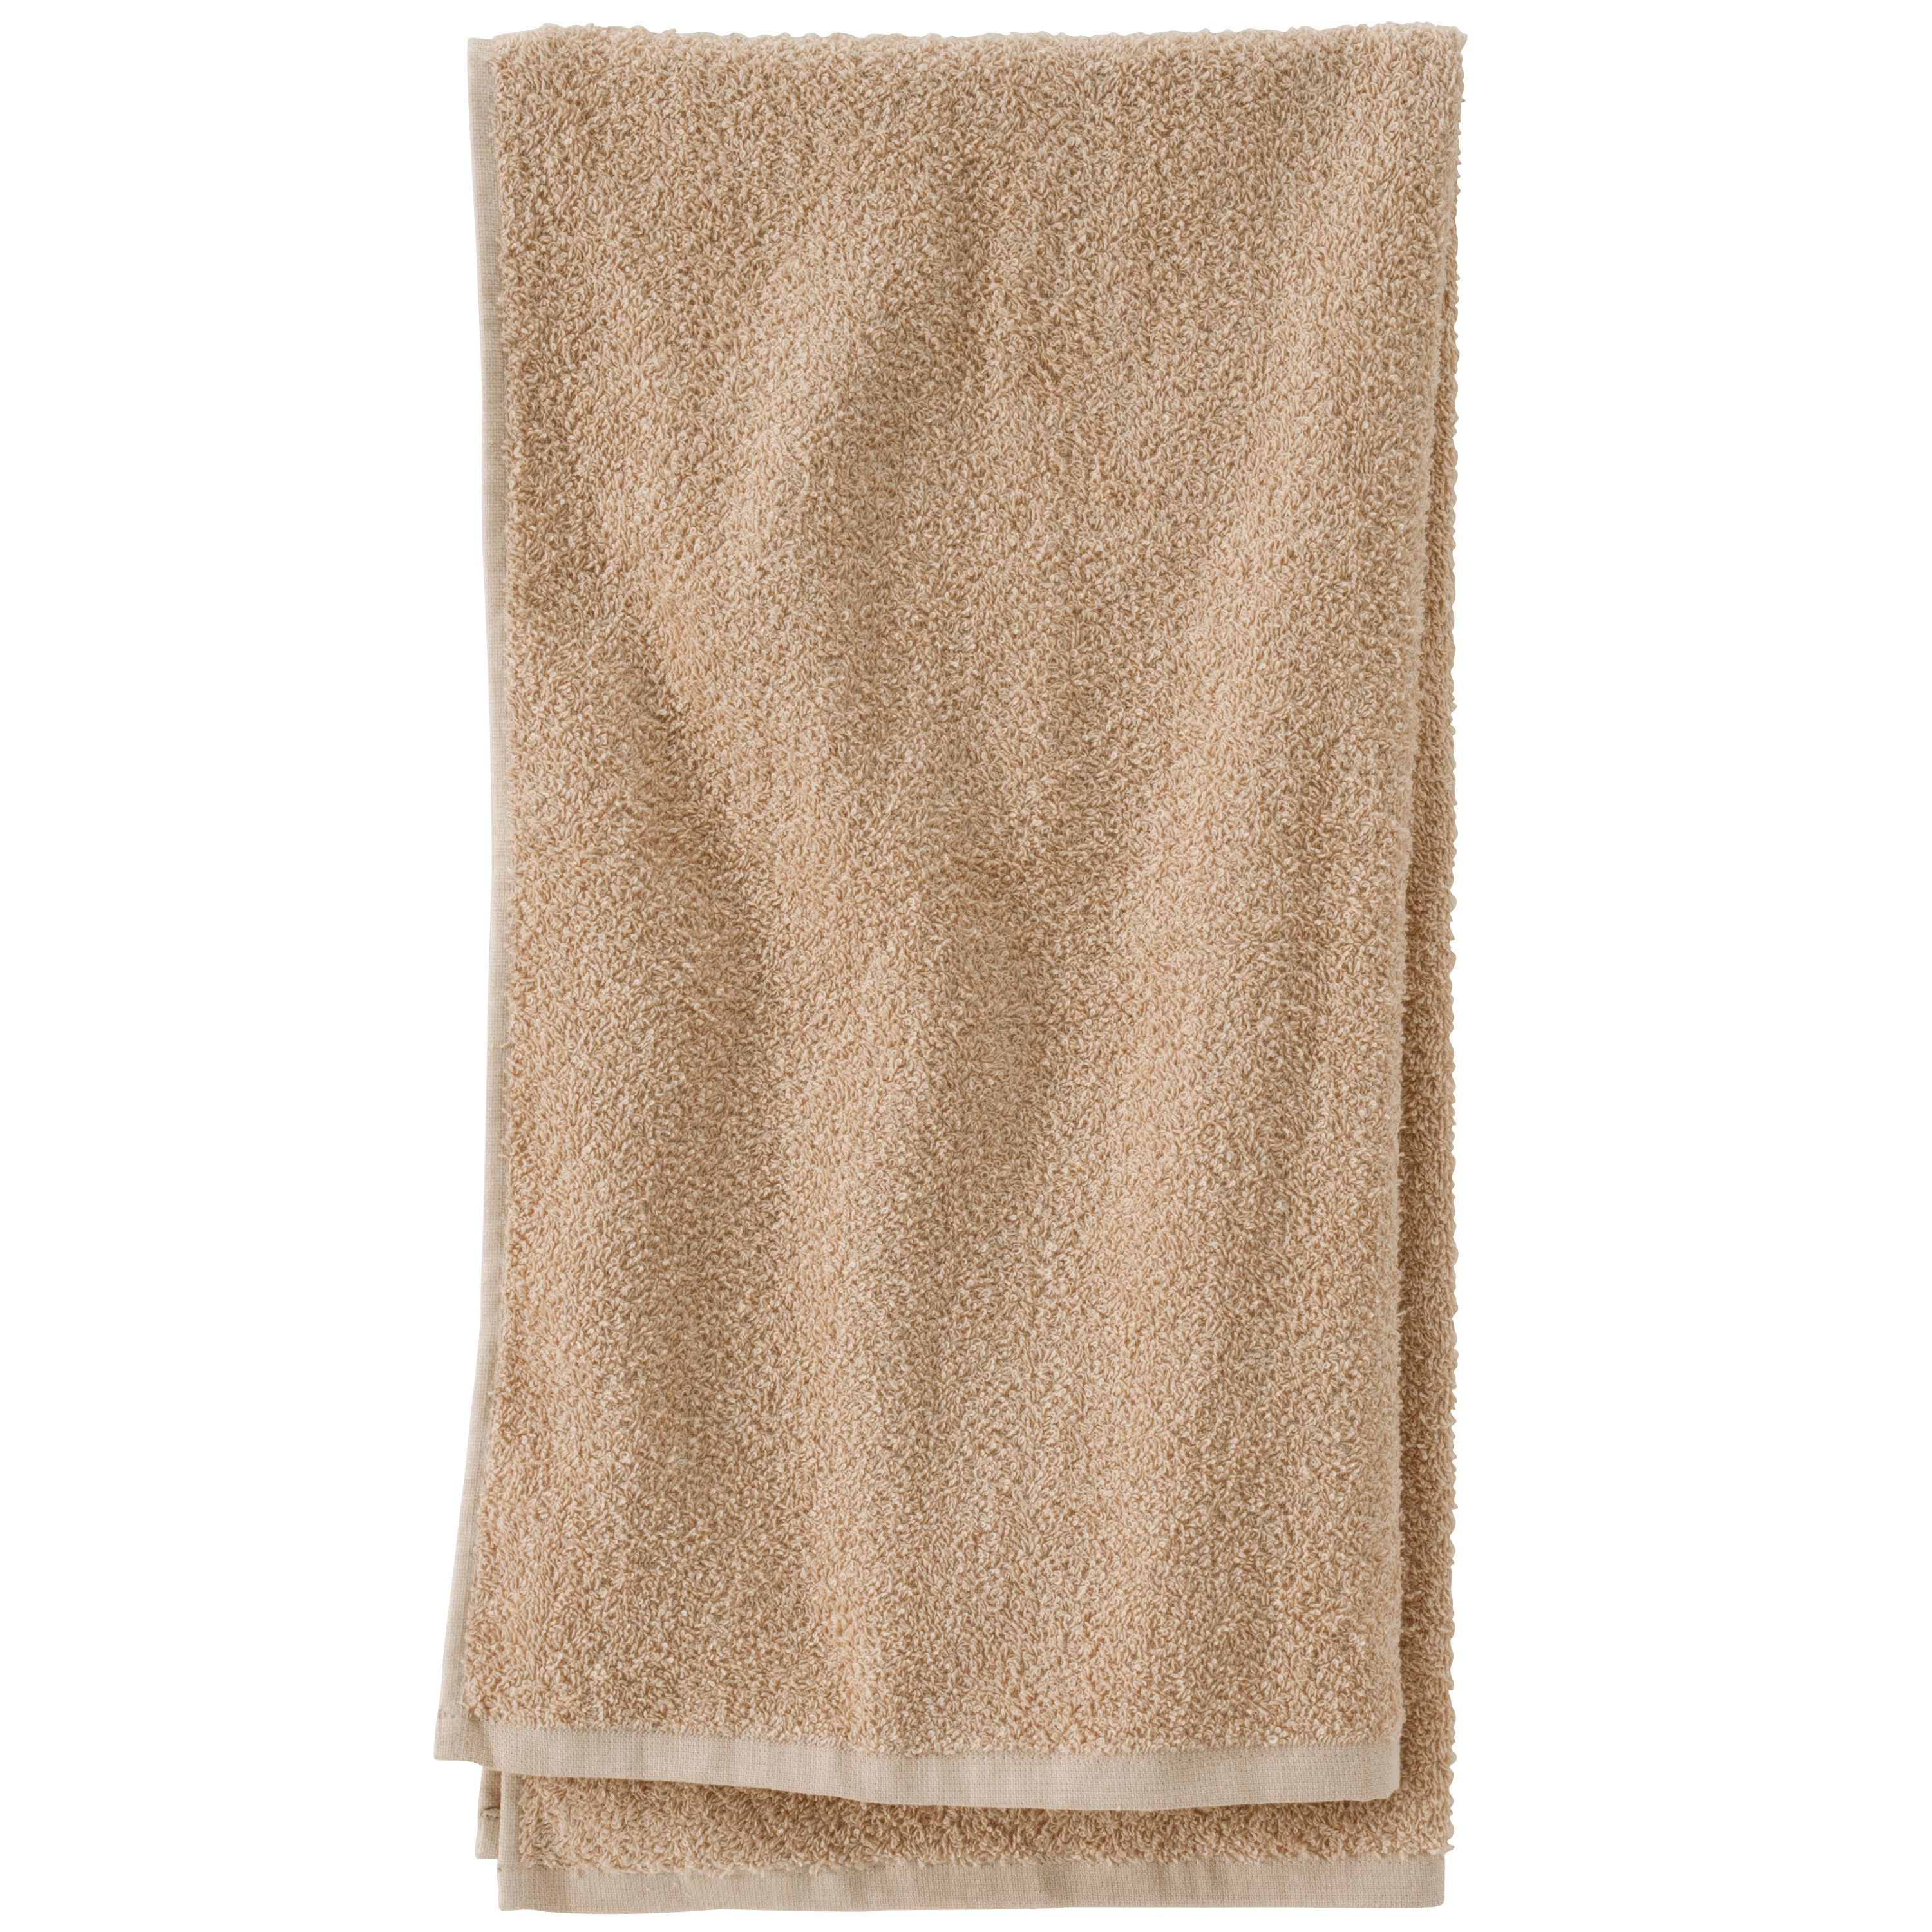 Mainstays 3-Piece Towel Set